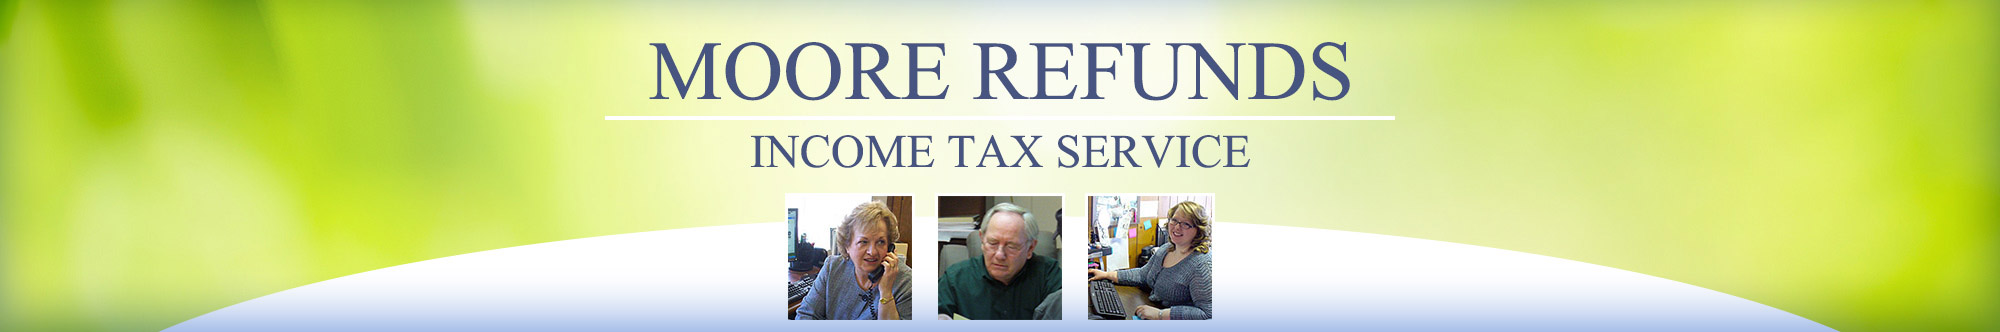 moore-tax-refunds-banner4-7